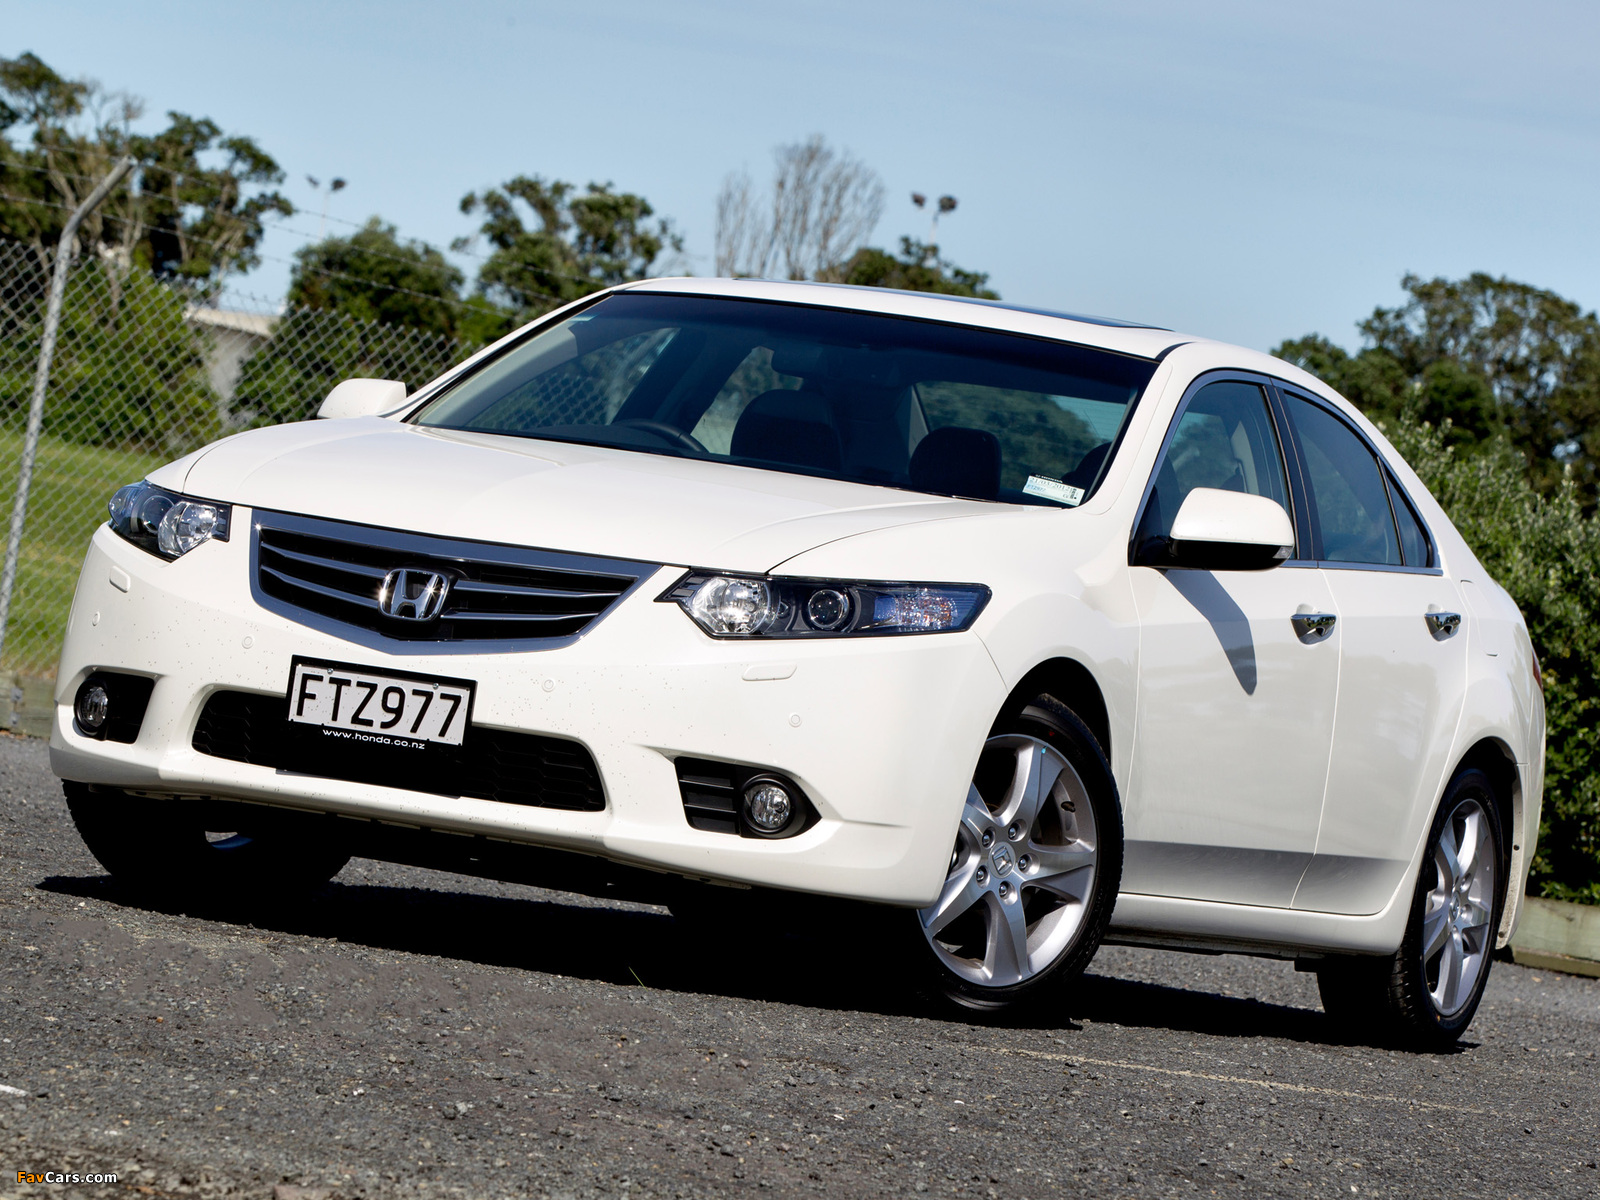 Honda Accord Euro Sedan Au Spec 2011 Images 1600x1200